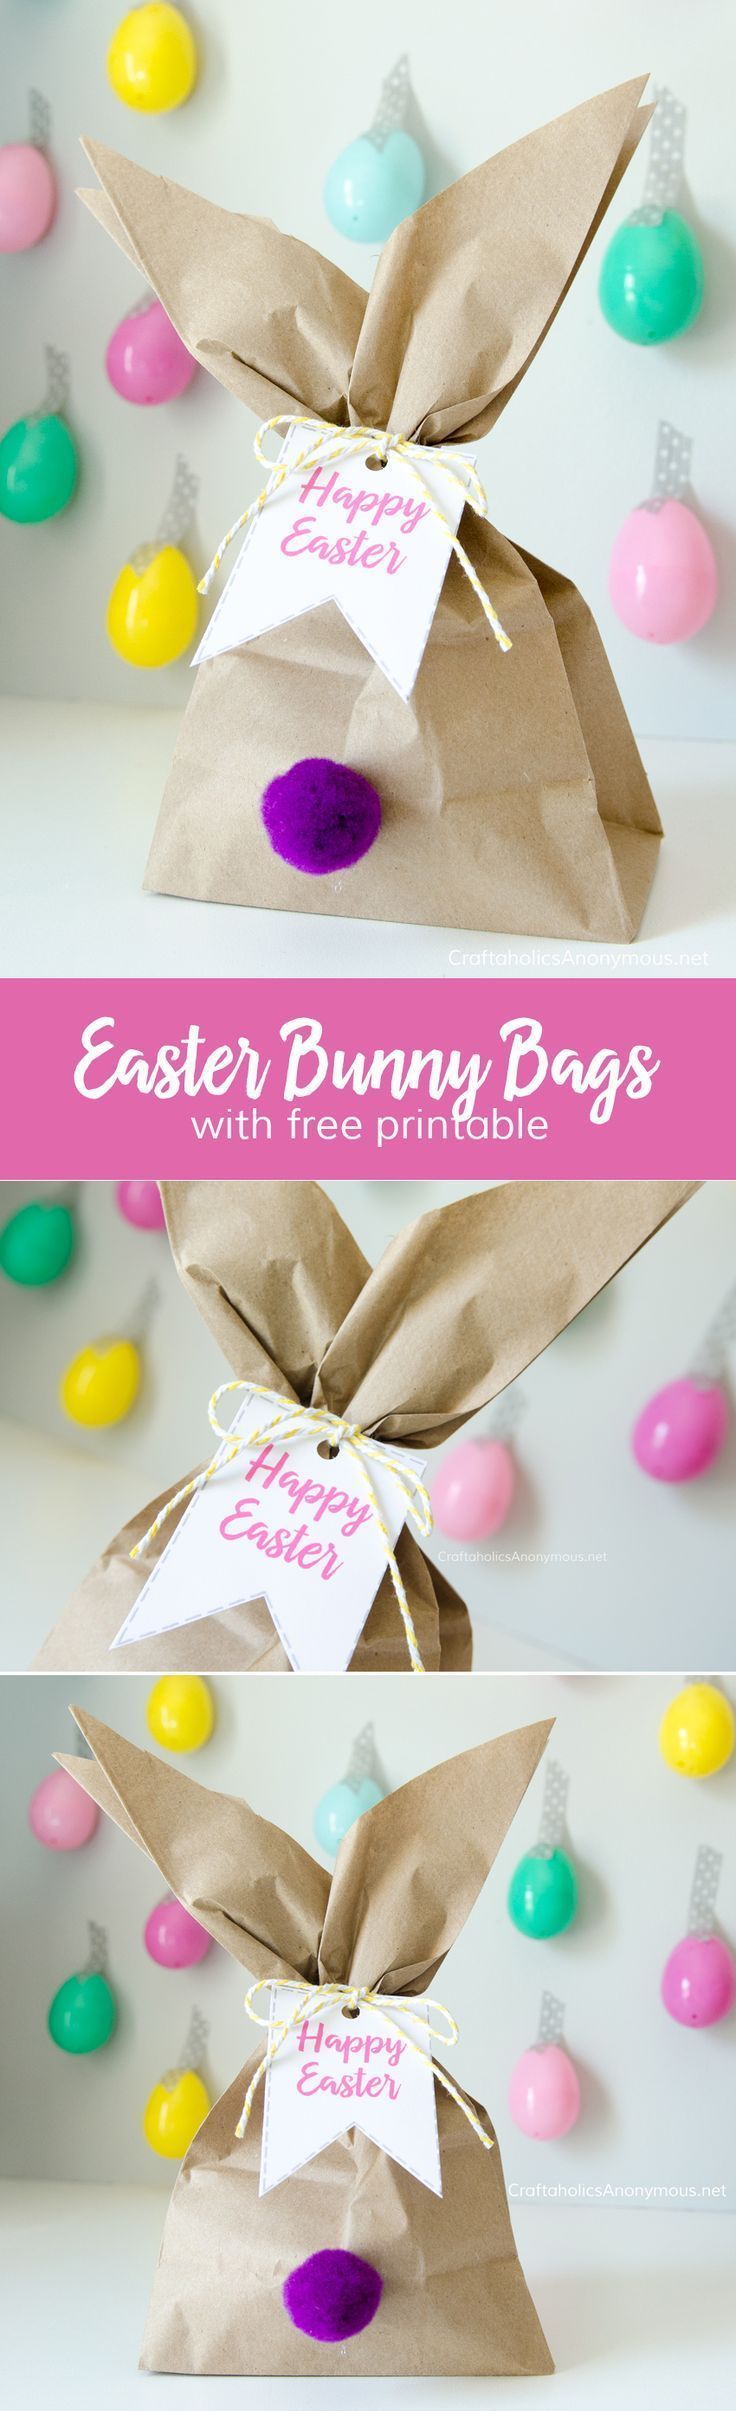 Easy Easter Bunny Gift Bags Idea